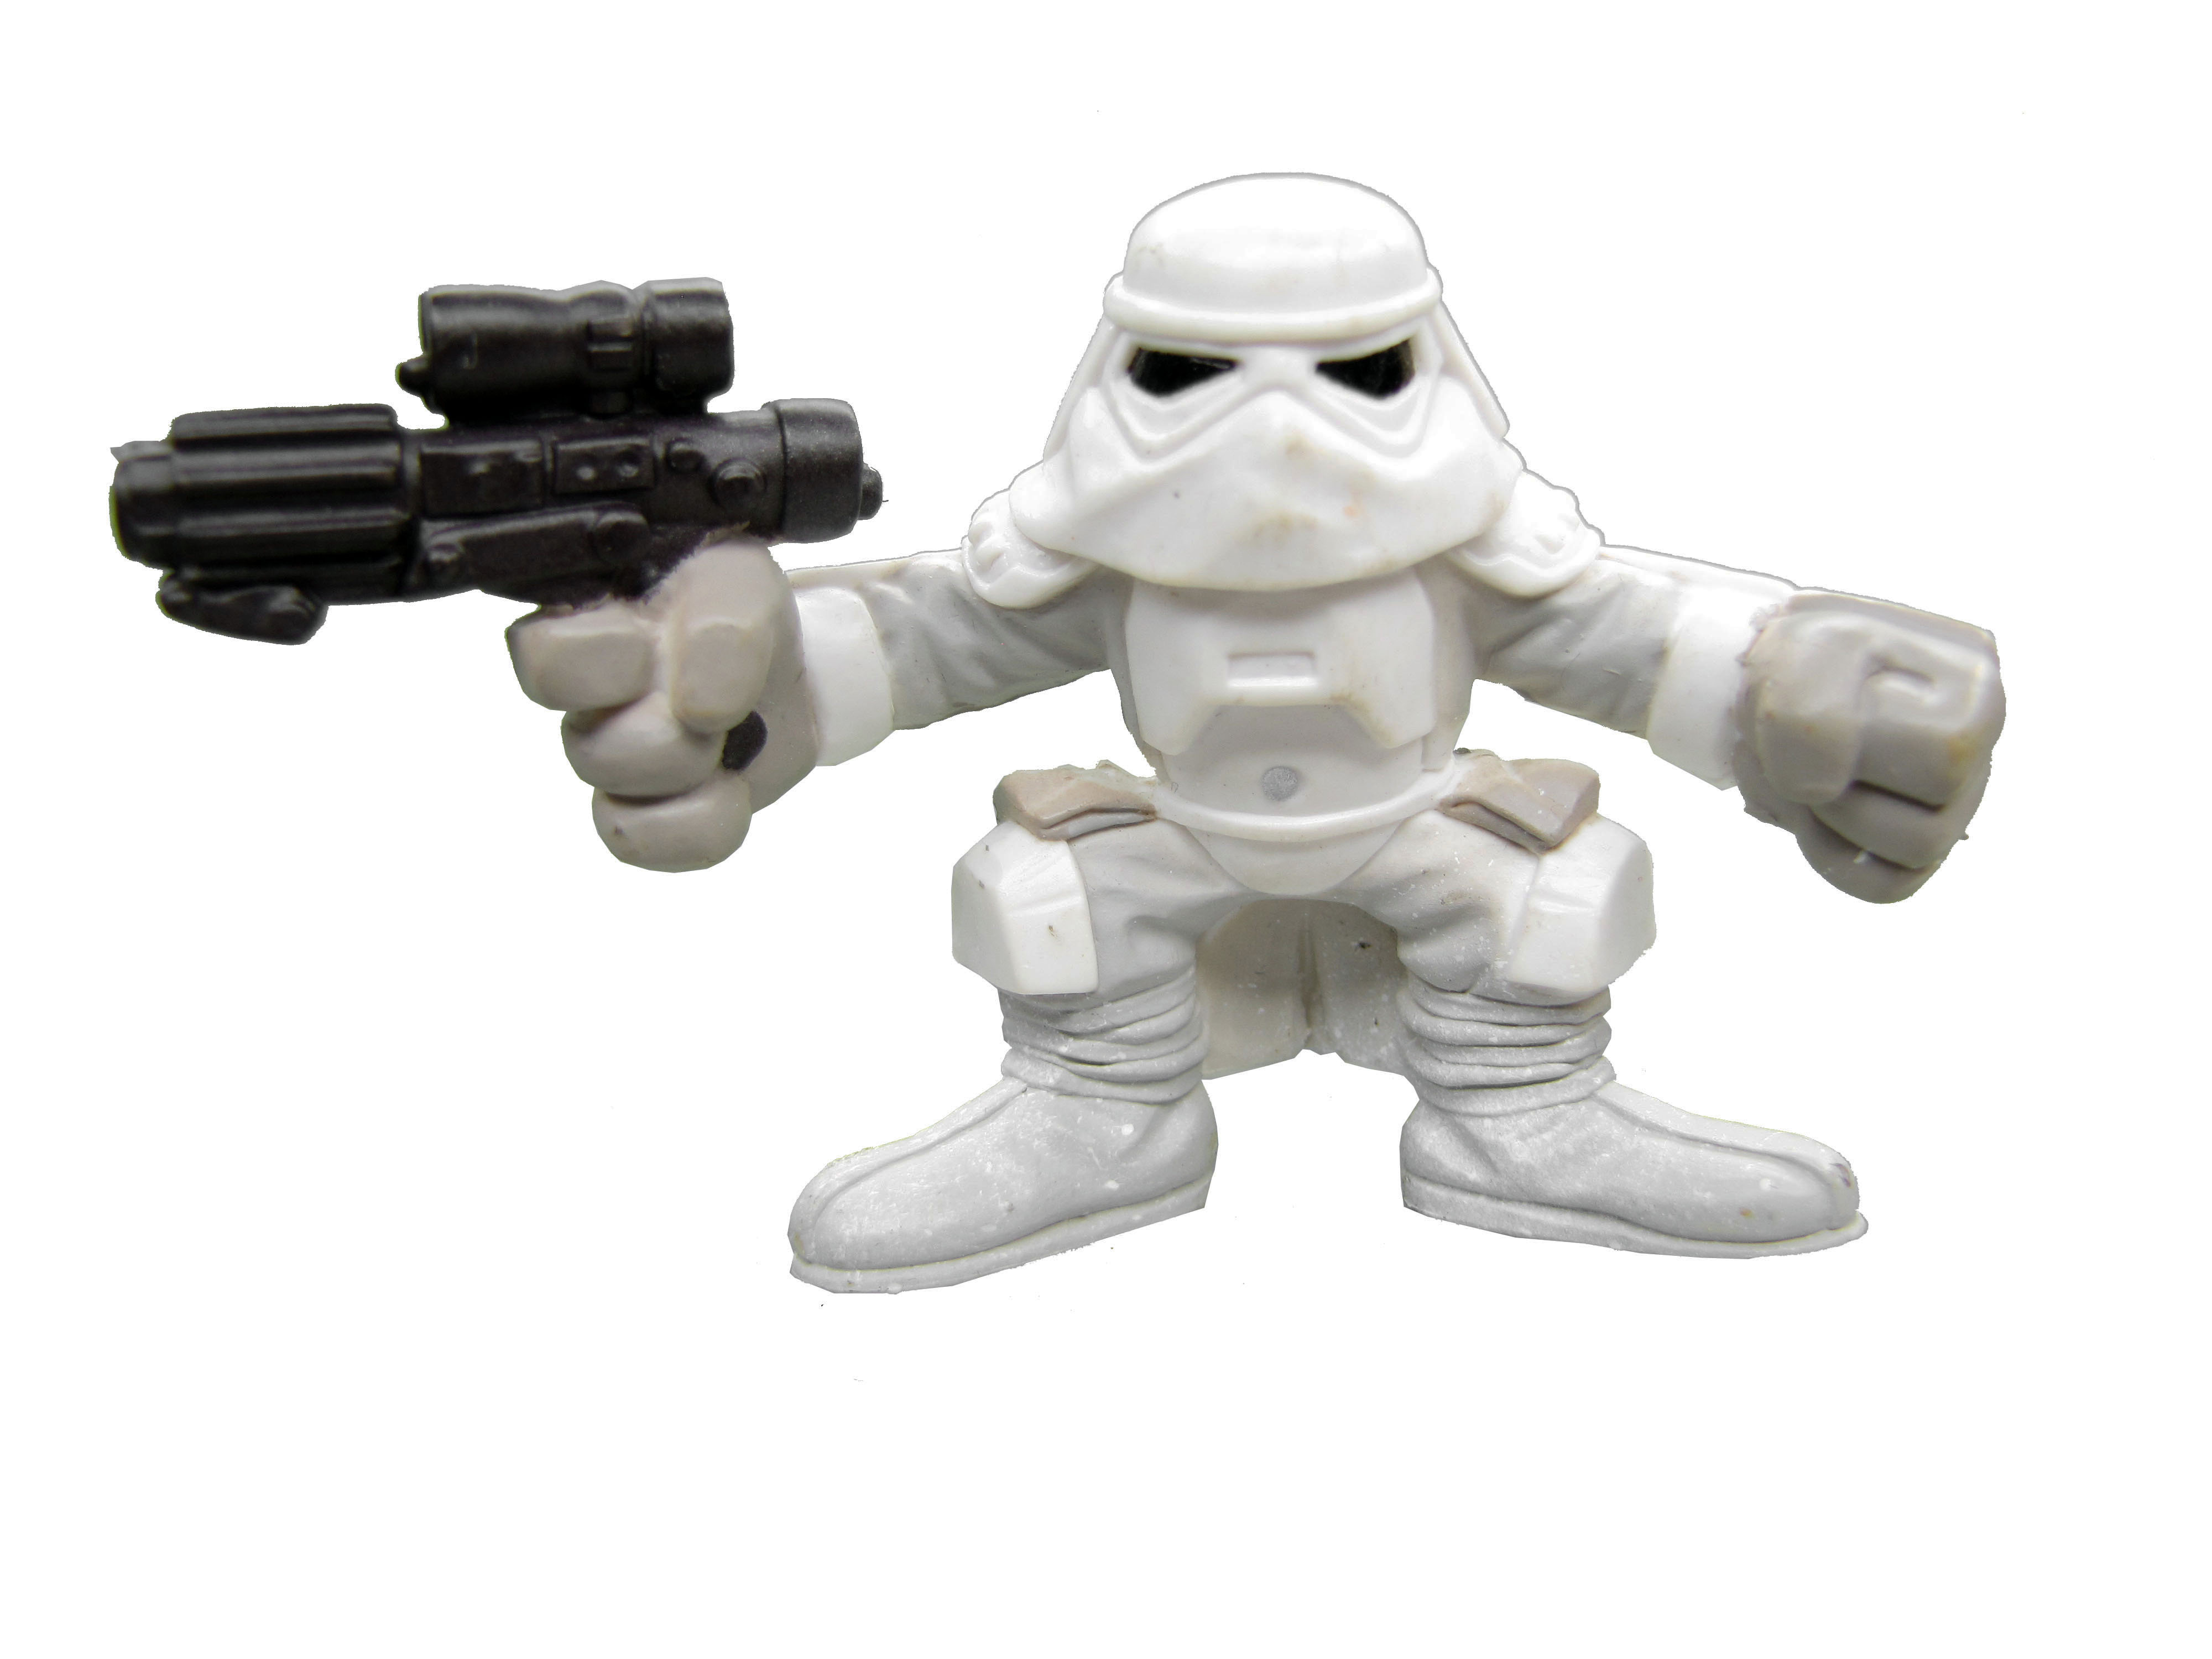 Star Wars Galactic Heroes BATTLE OF HOTH SNOWTROOPER Complete